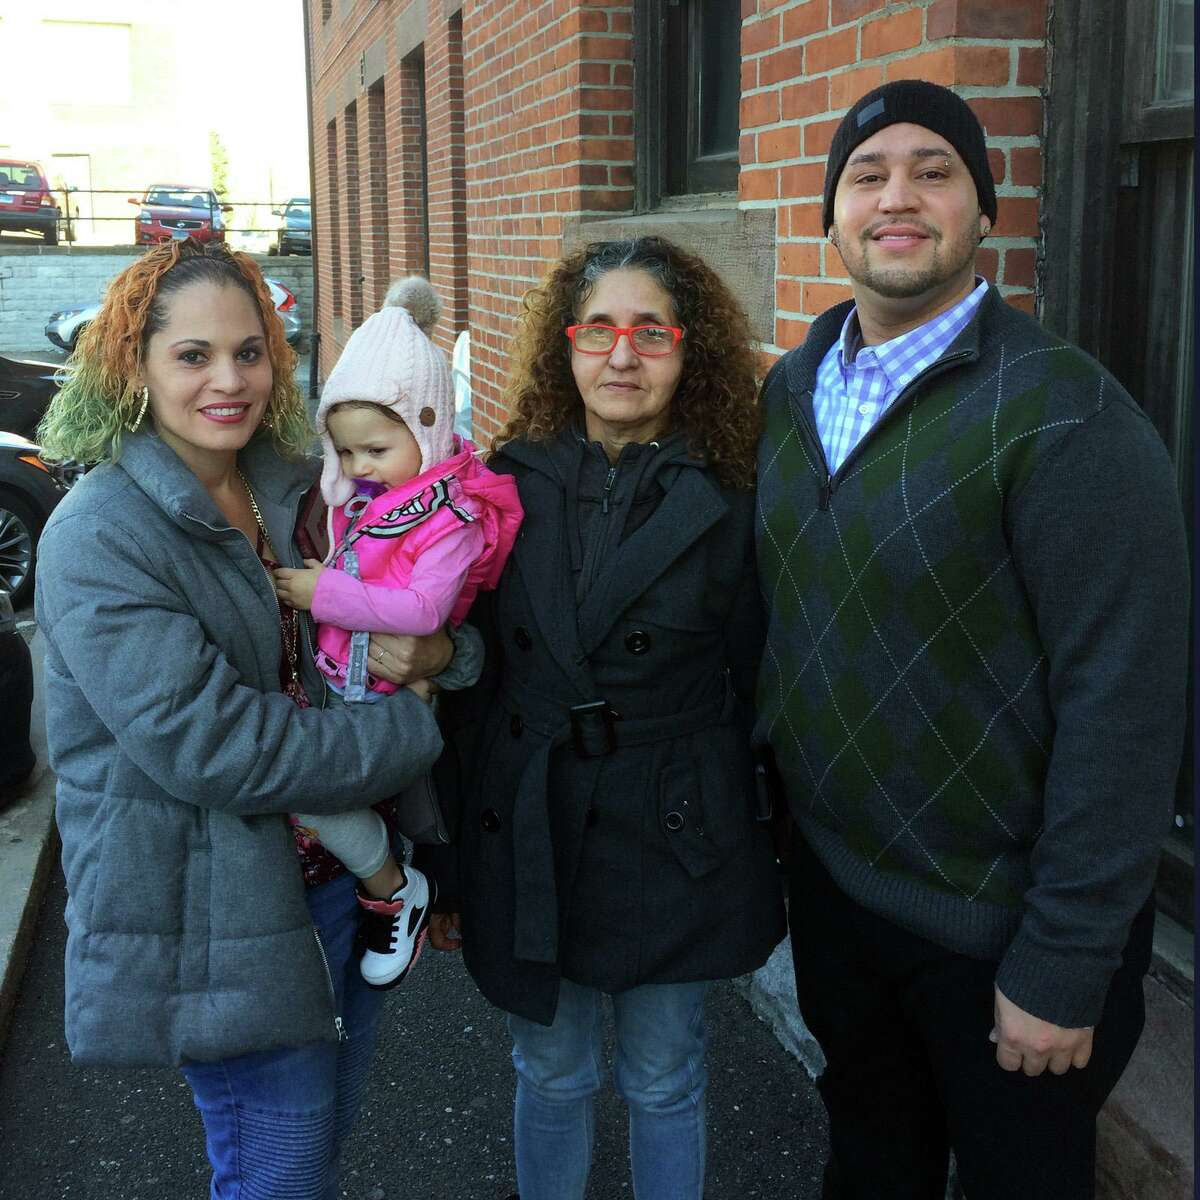 The Mendez family, arrested during a now-controversial incident in October 2017, wait outside the Golden Hill Street courthouse in Bridgeport recently. From Left, Wanda Mendez, her 2-year-old daughter, Sara Mendez and Carmelo Mendez